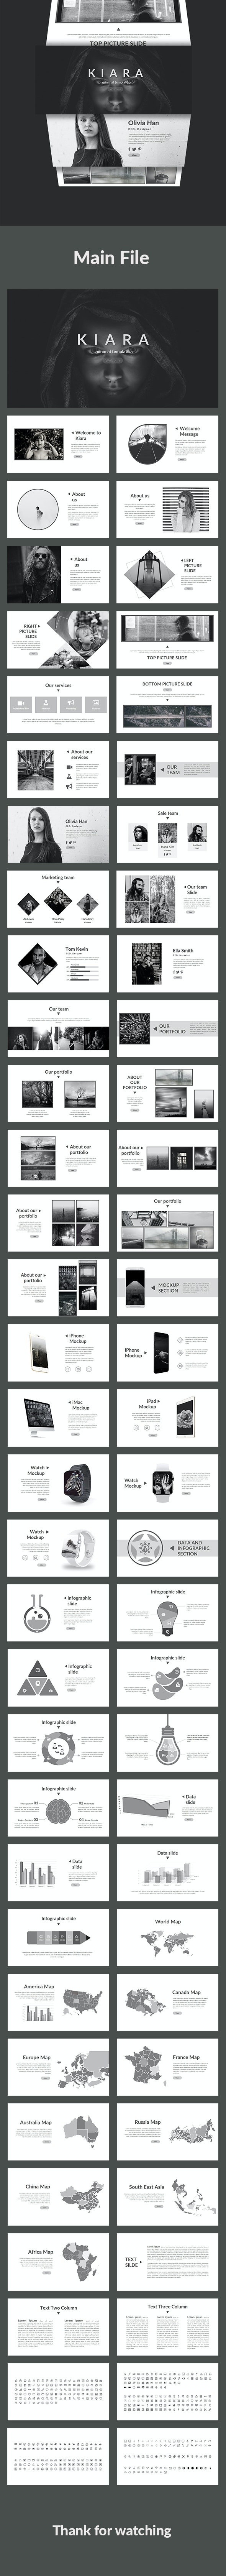 Kiara -  Creative Google Slides Template - Google Slides Presentation Templates